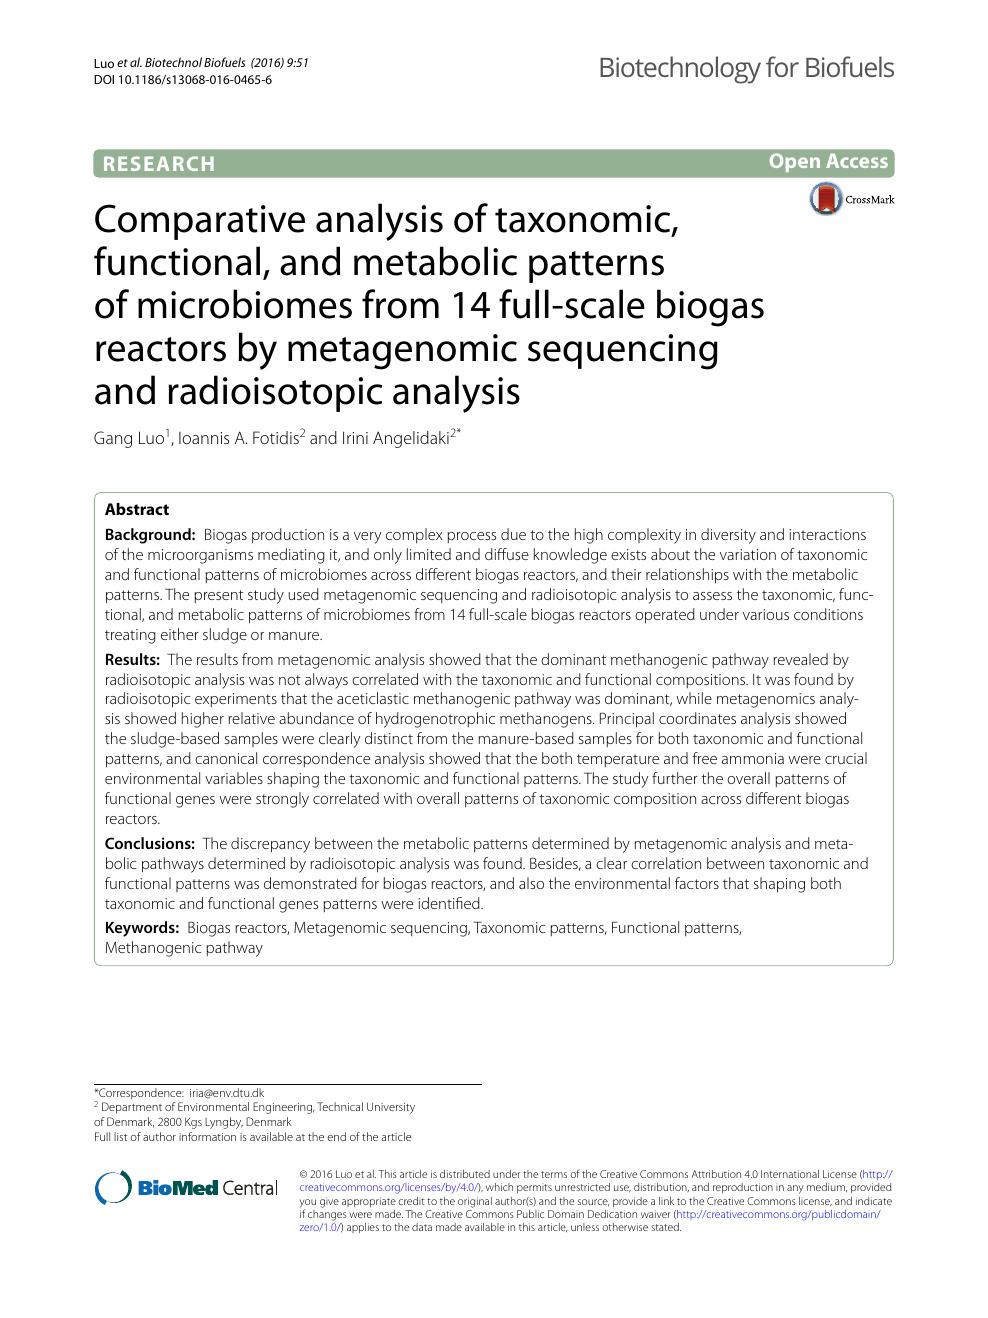 Comparative analysis of taxonomic, functional, and metabolic